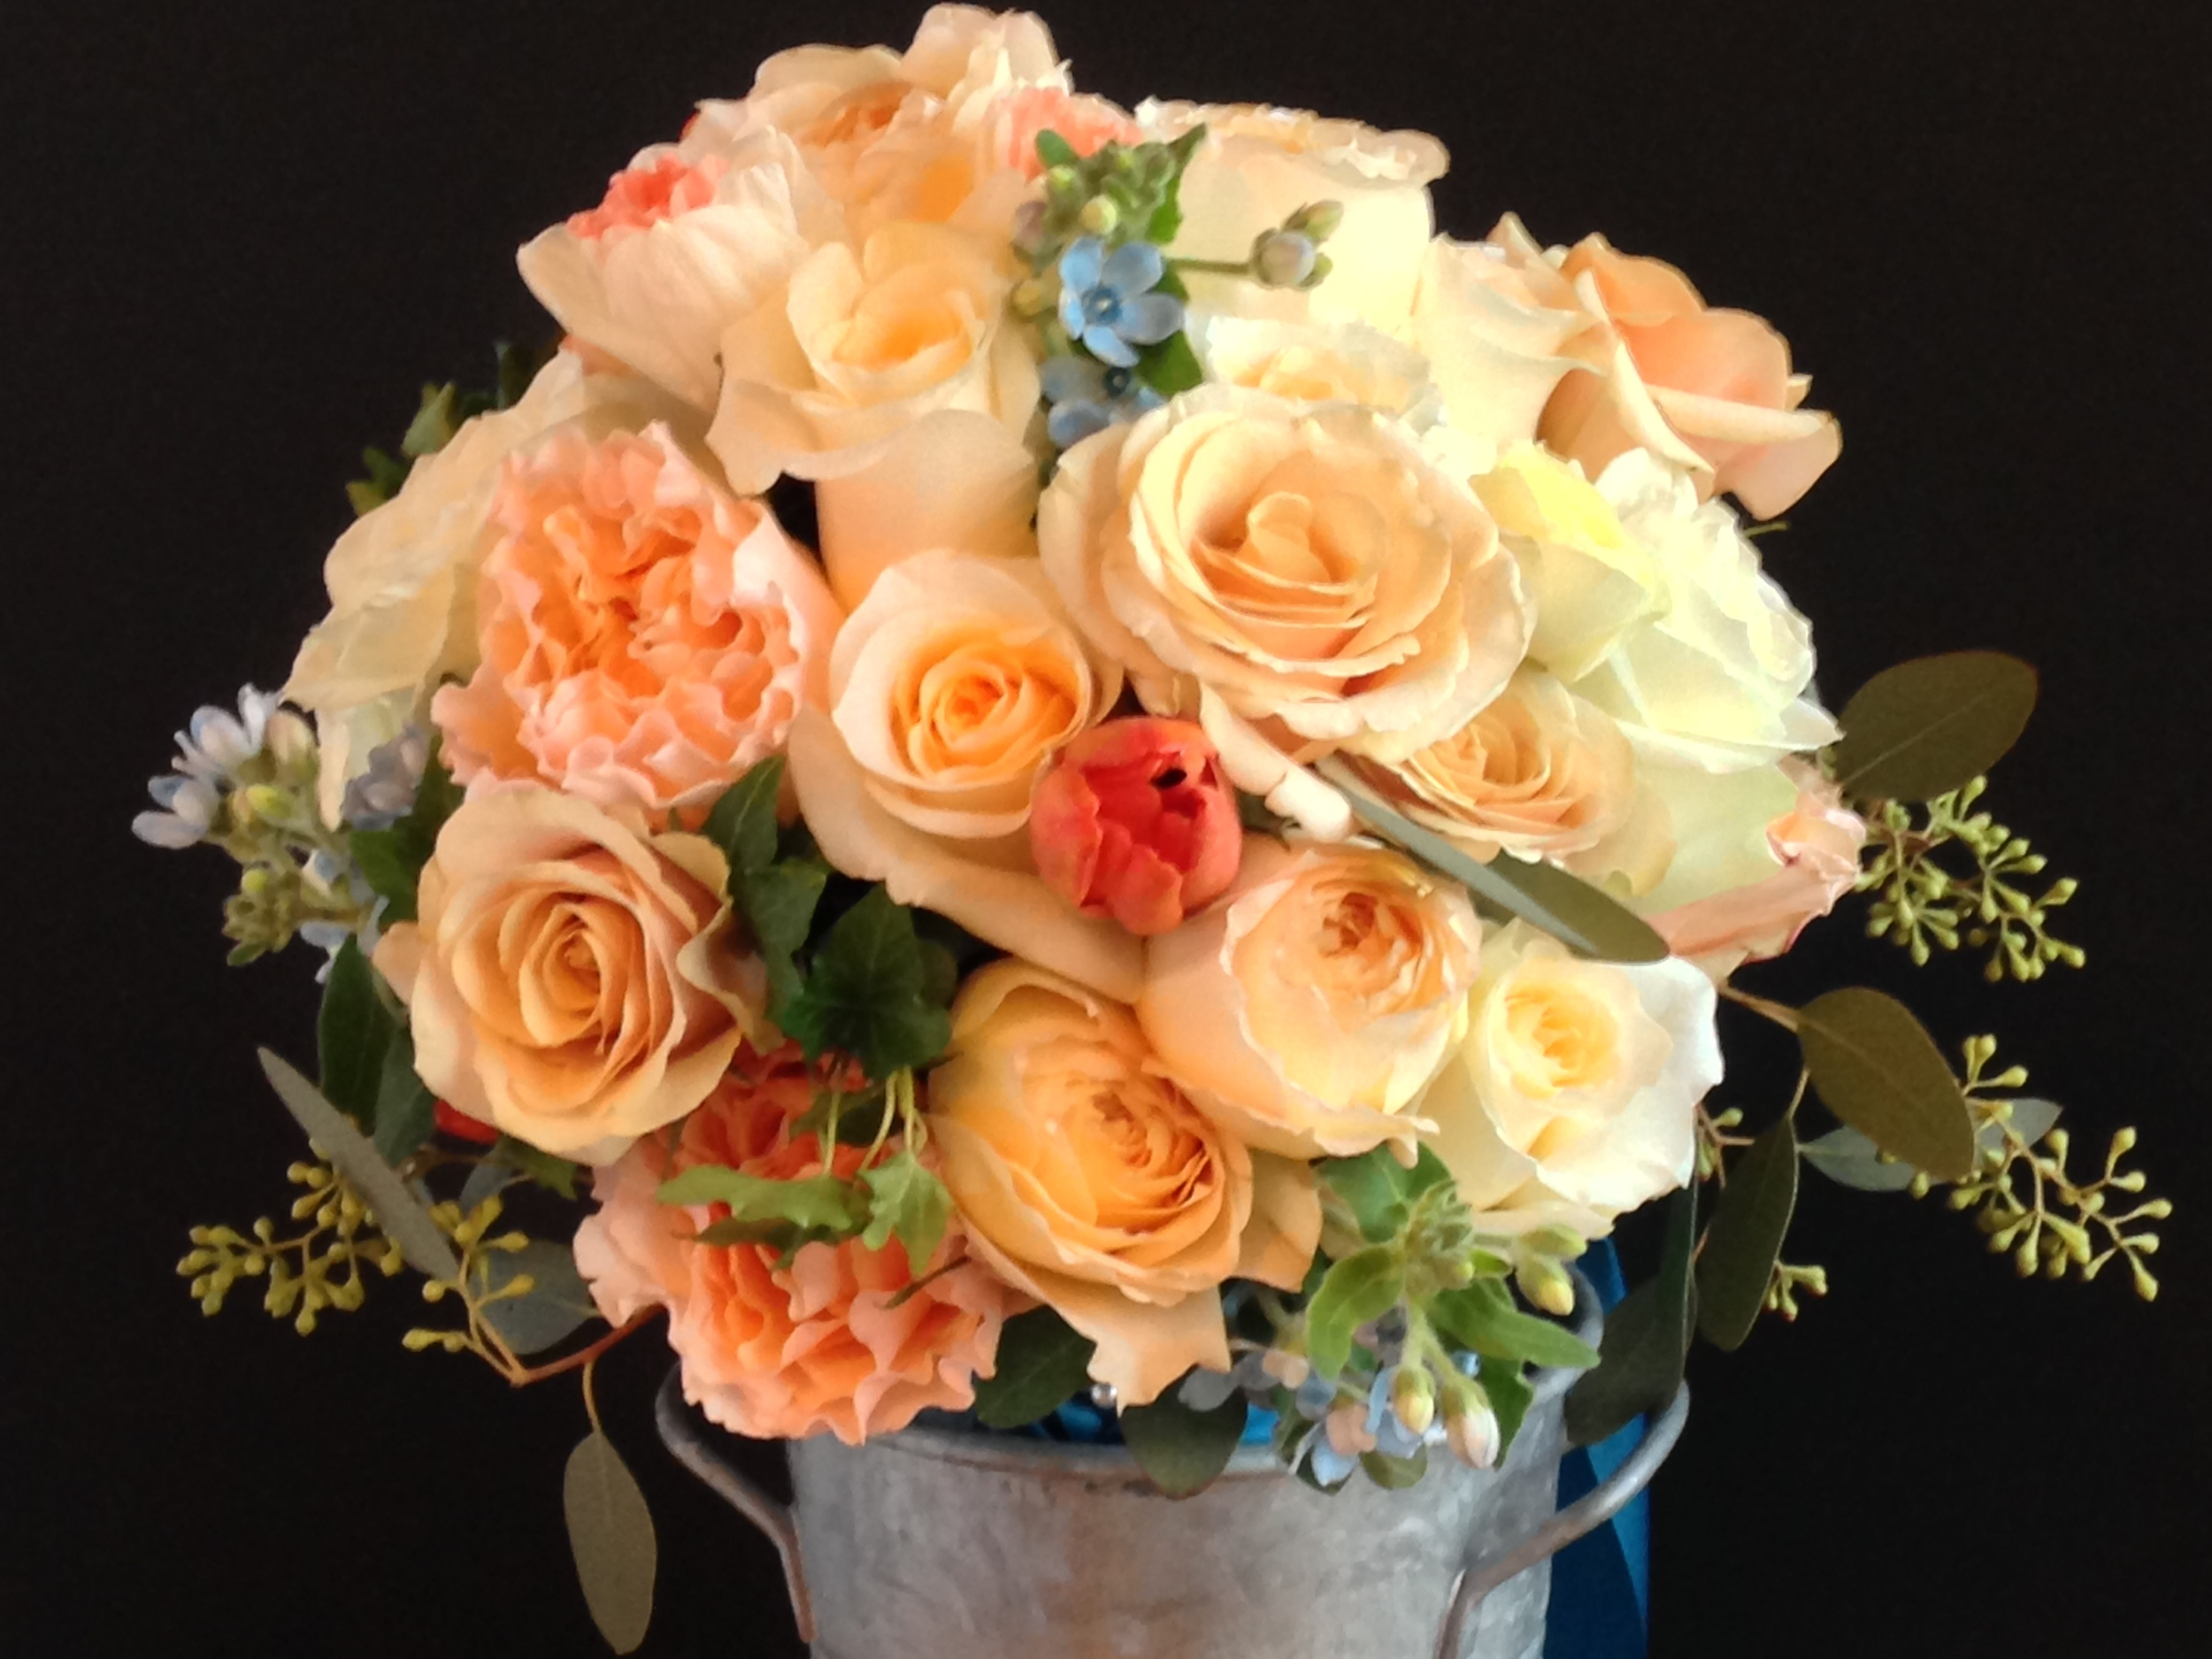 Photo by Catherine G. Damwood LLC, Image of Brides Bouquet